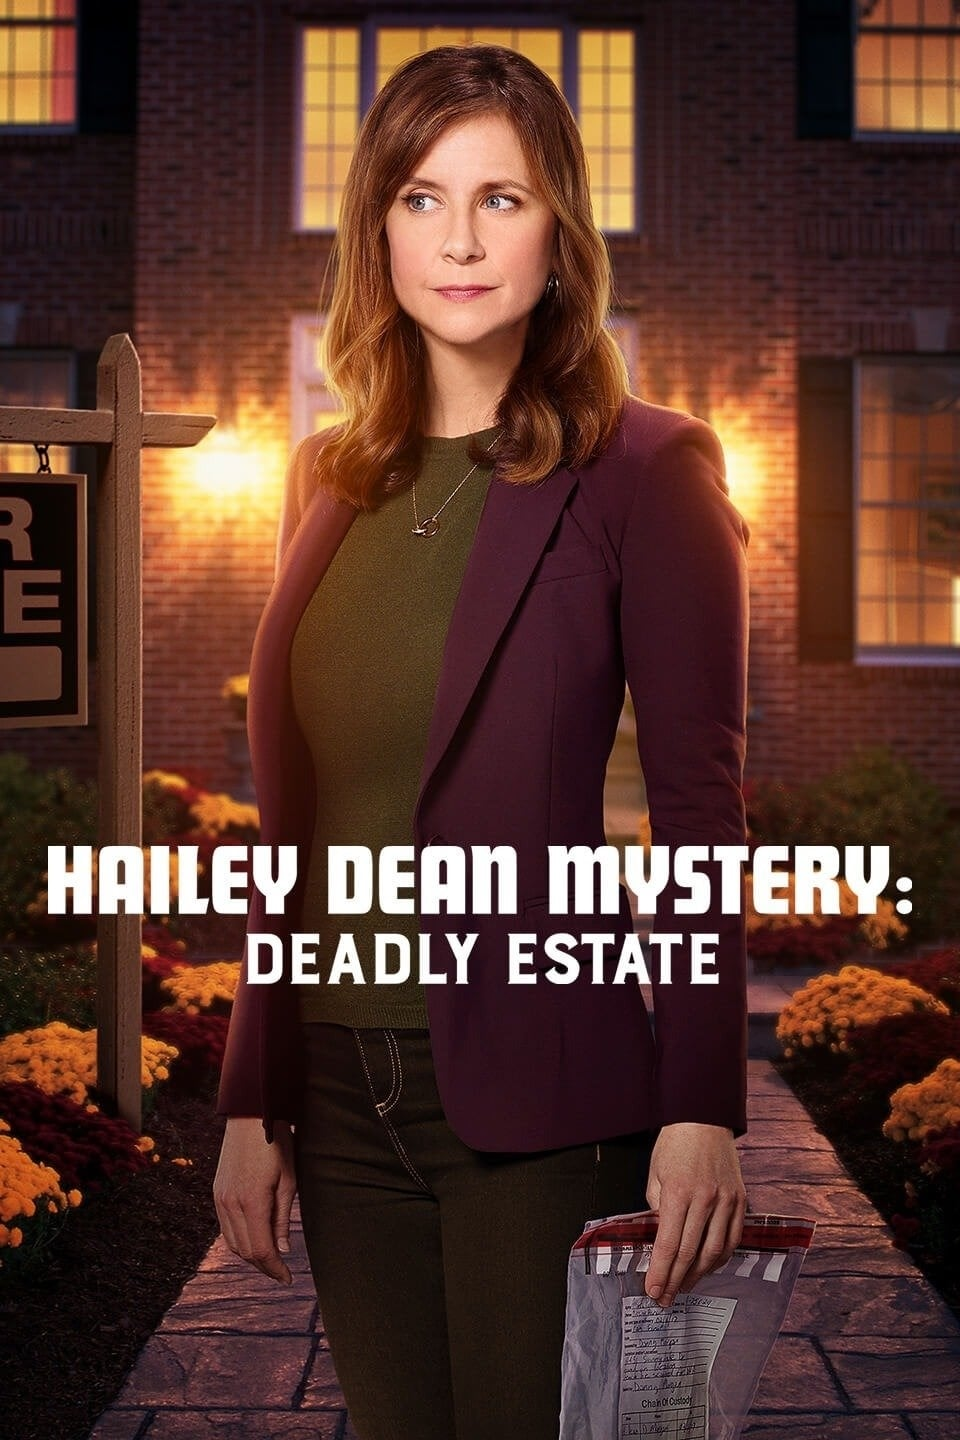 thumb Hailey Dean Mystery: Deadly Estate